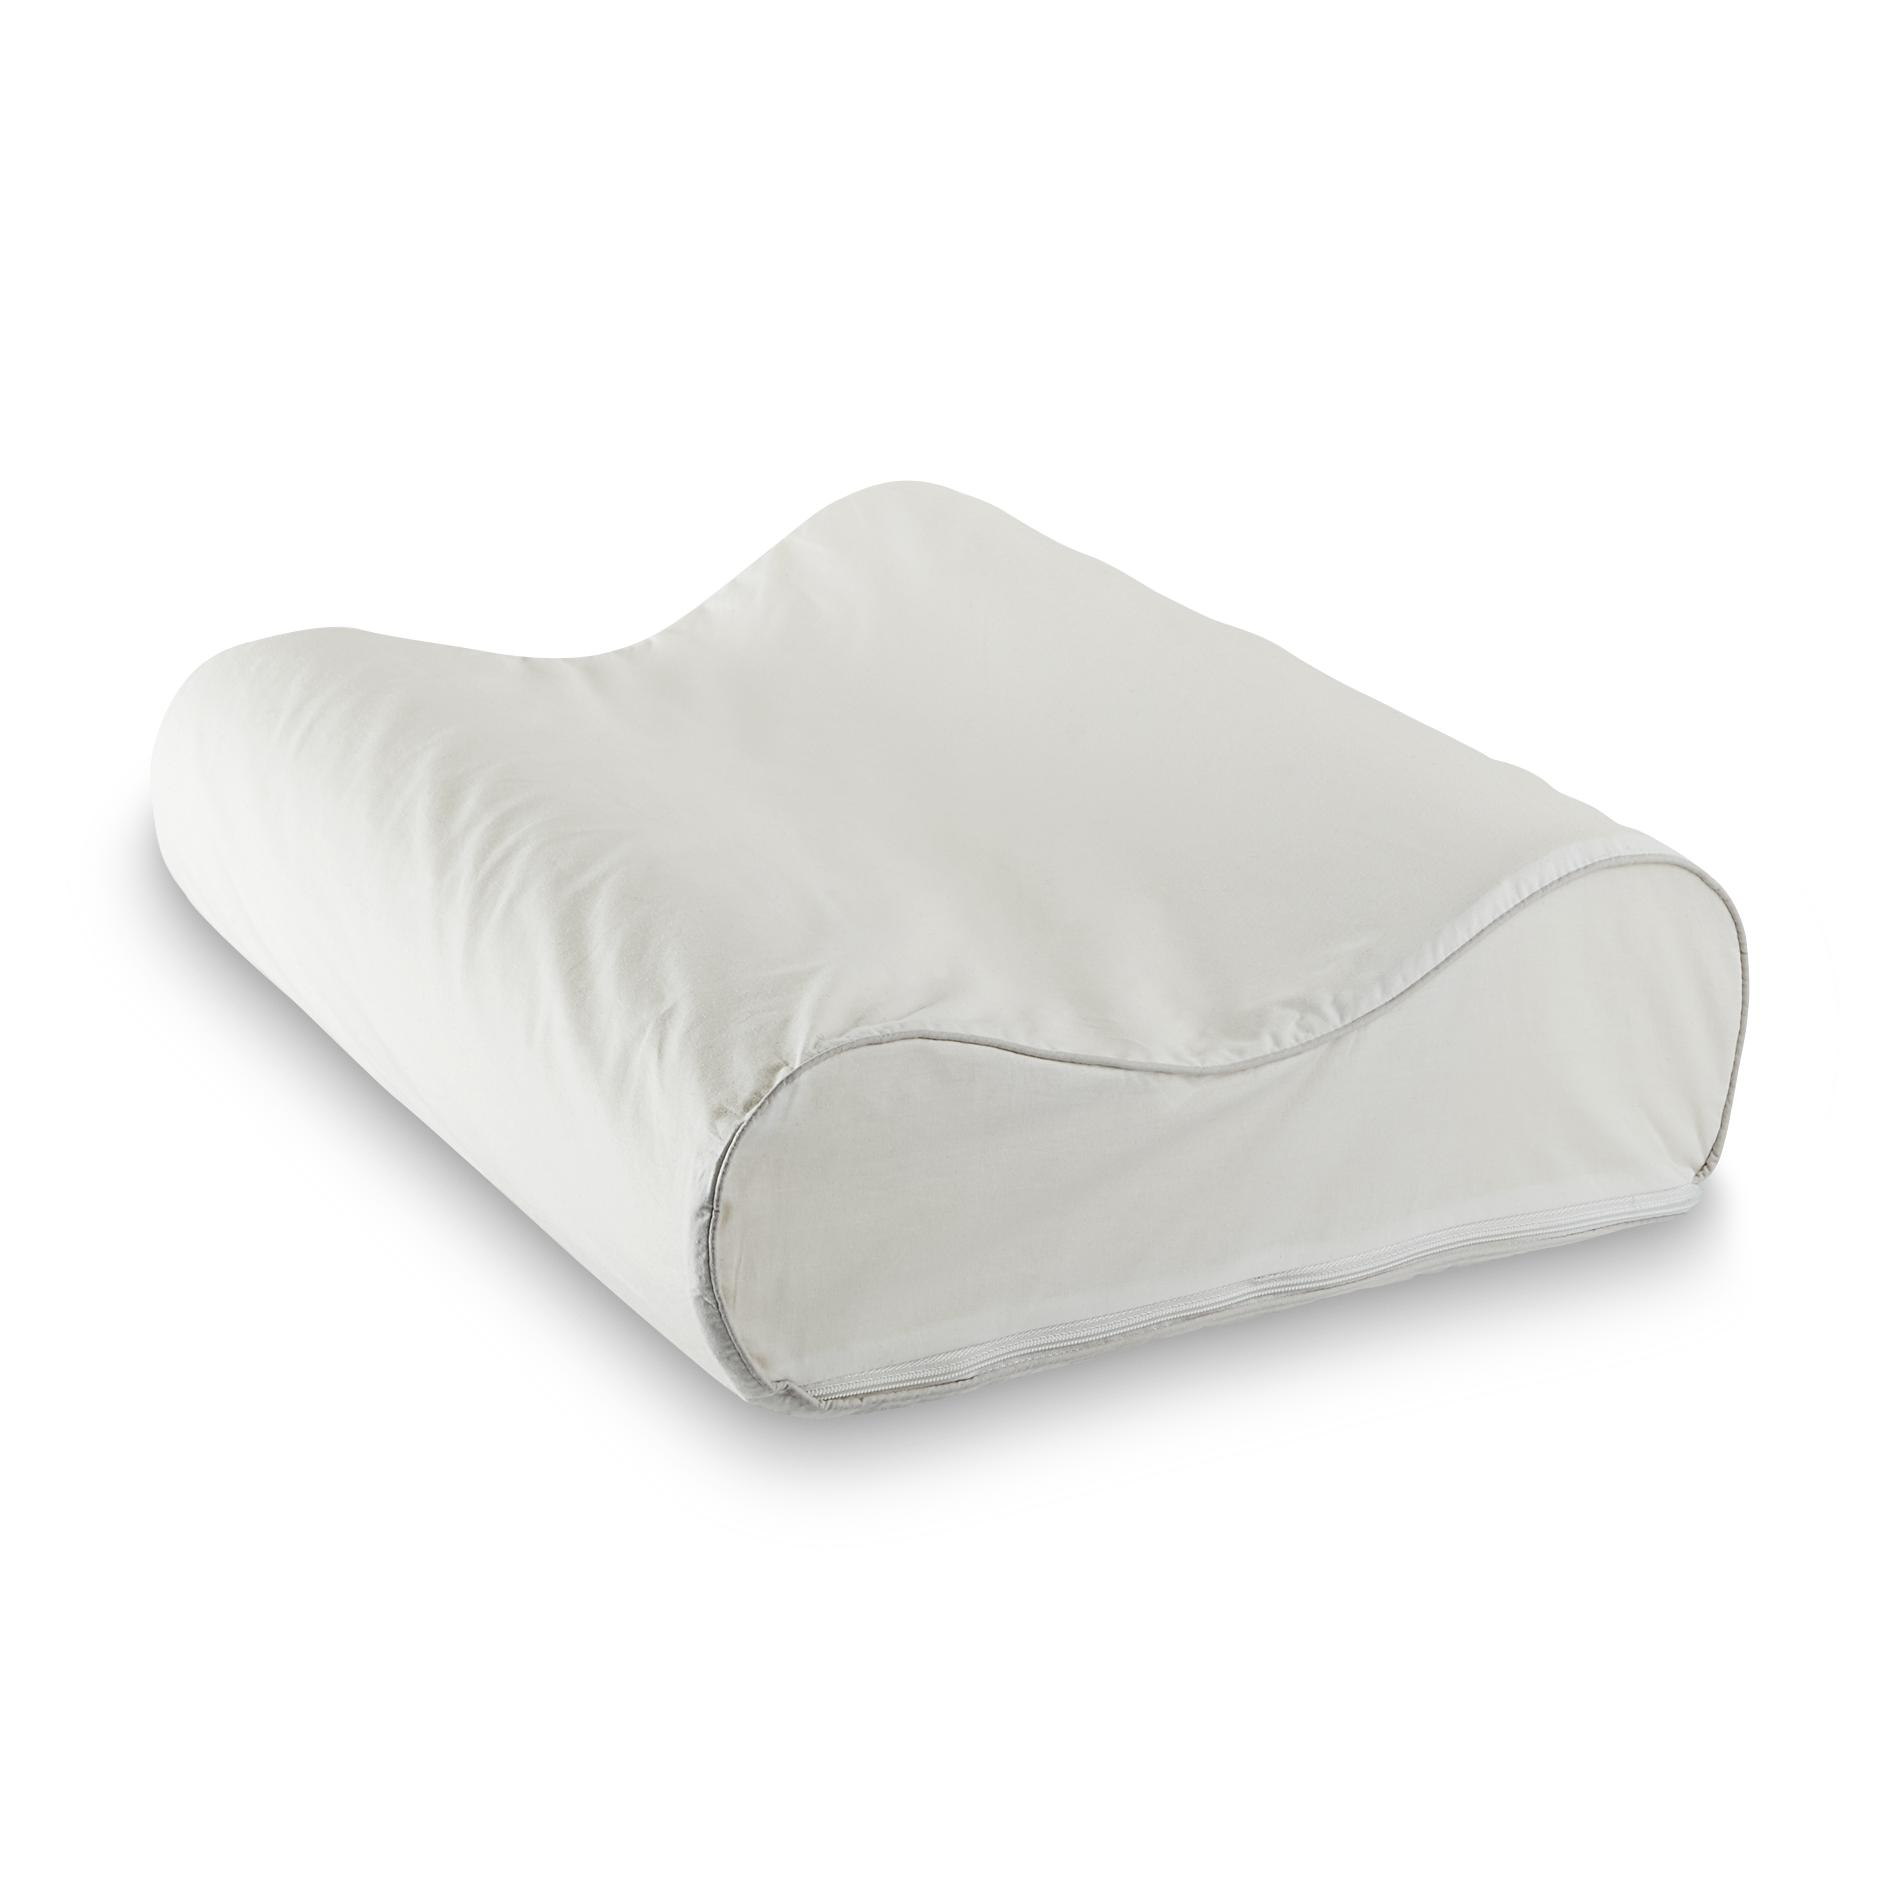 Sleep Innovations SureTemp Memory Foam Contour Pillow